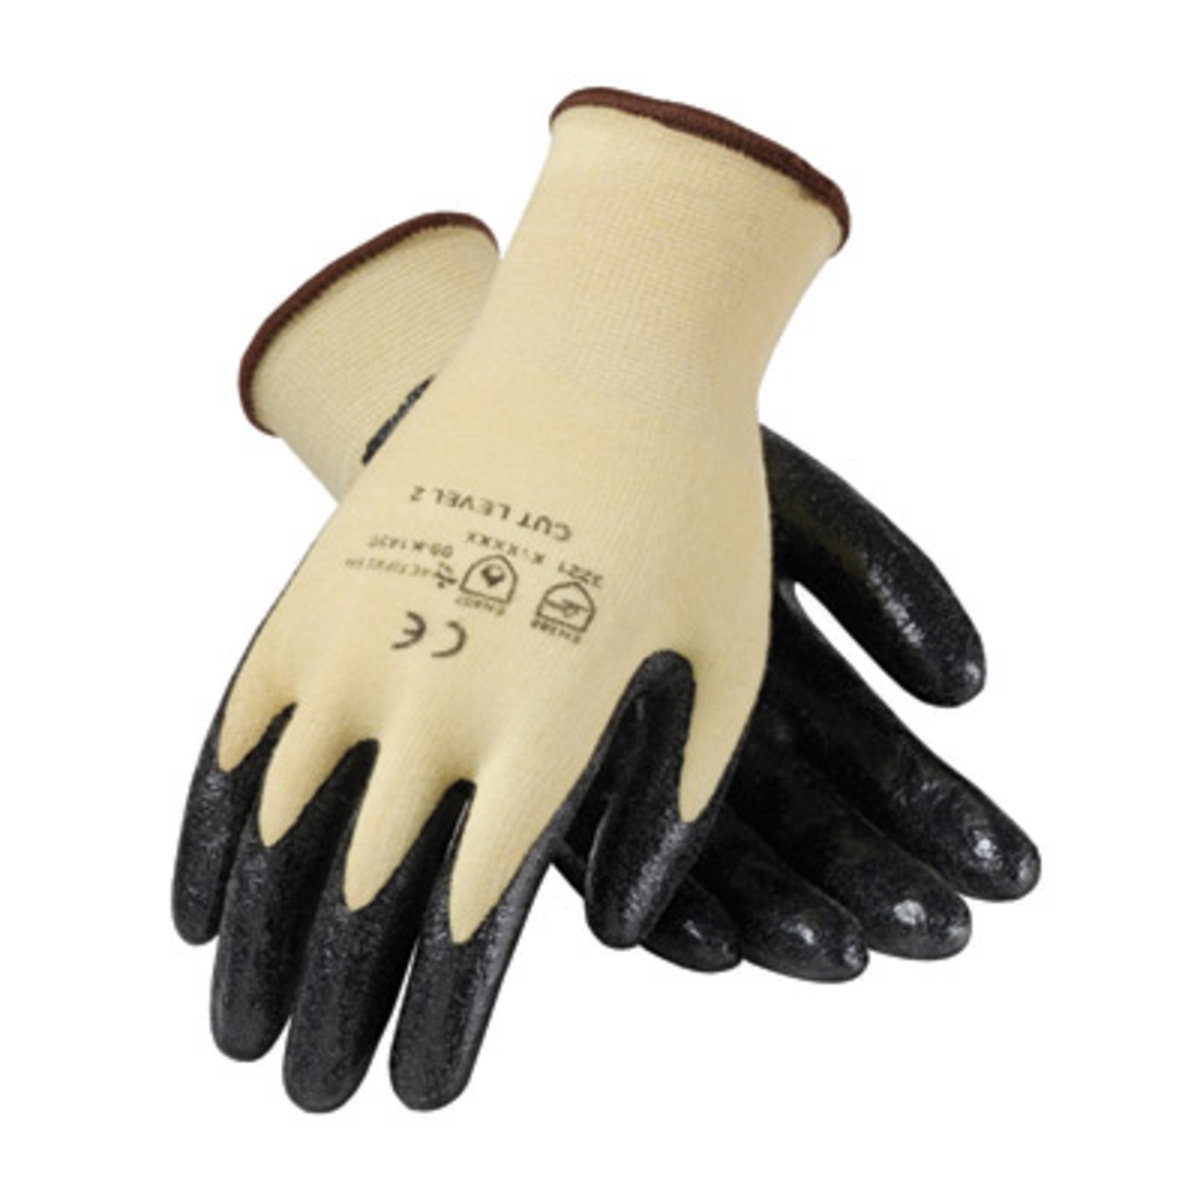 Black nitrile gloves xs - Protective Industrial Products X Small Kut Gard 15 Gauge Medium Weight Cut